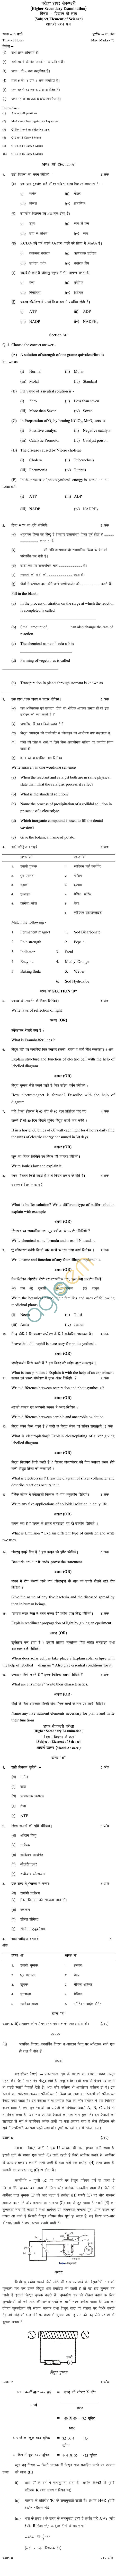 MP Board Class XII Elements of Science Model Questions & Answers - Set 2